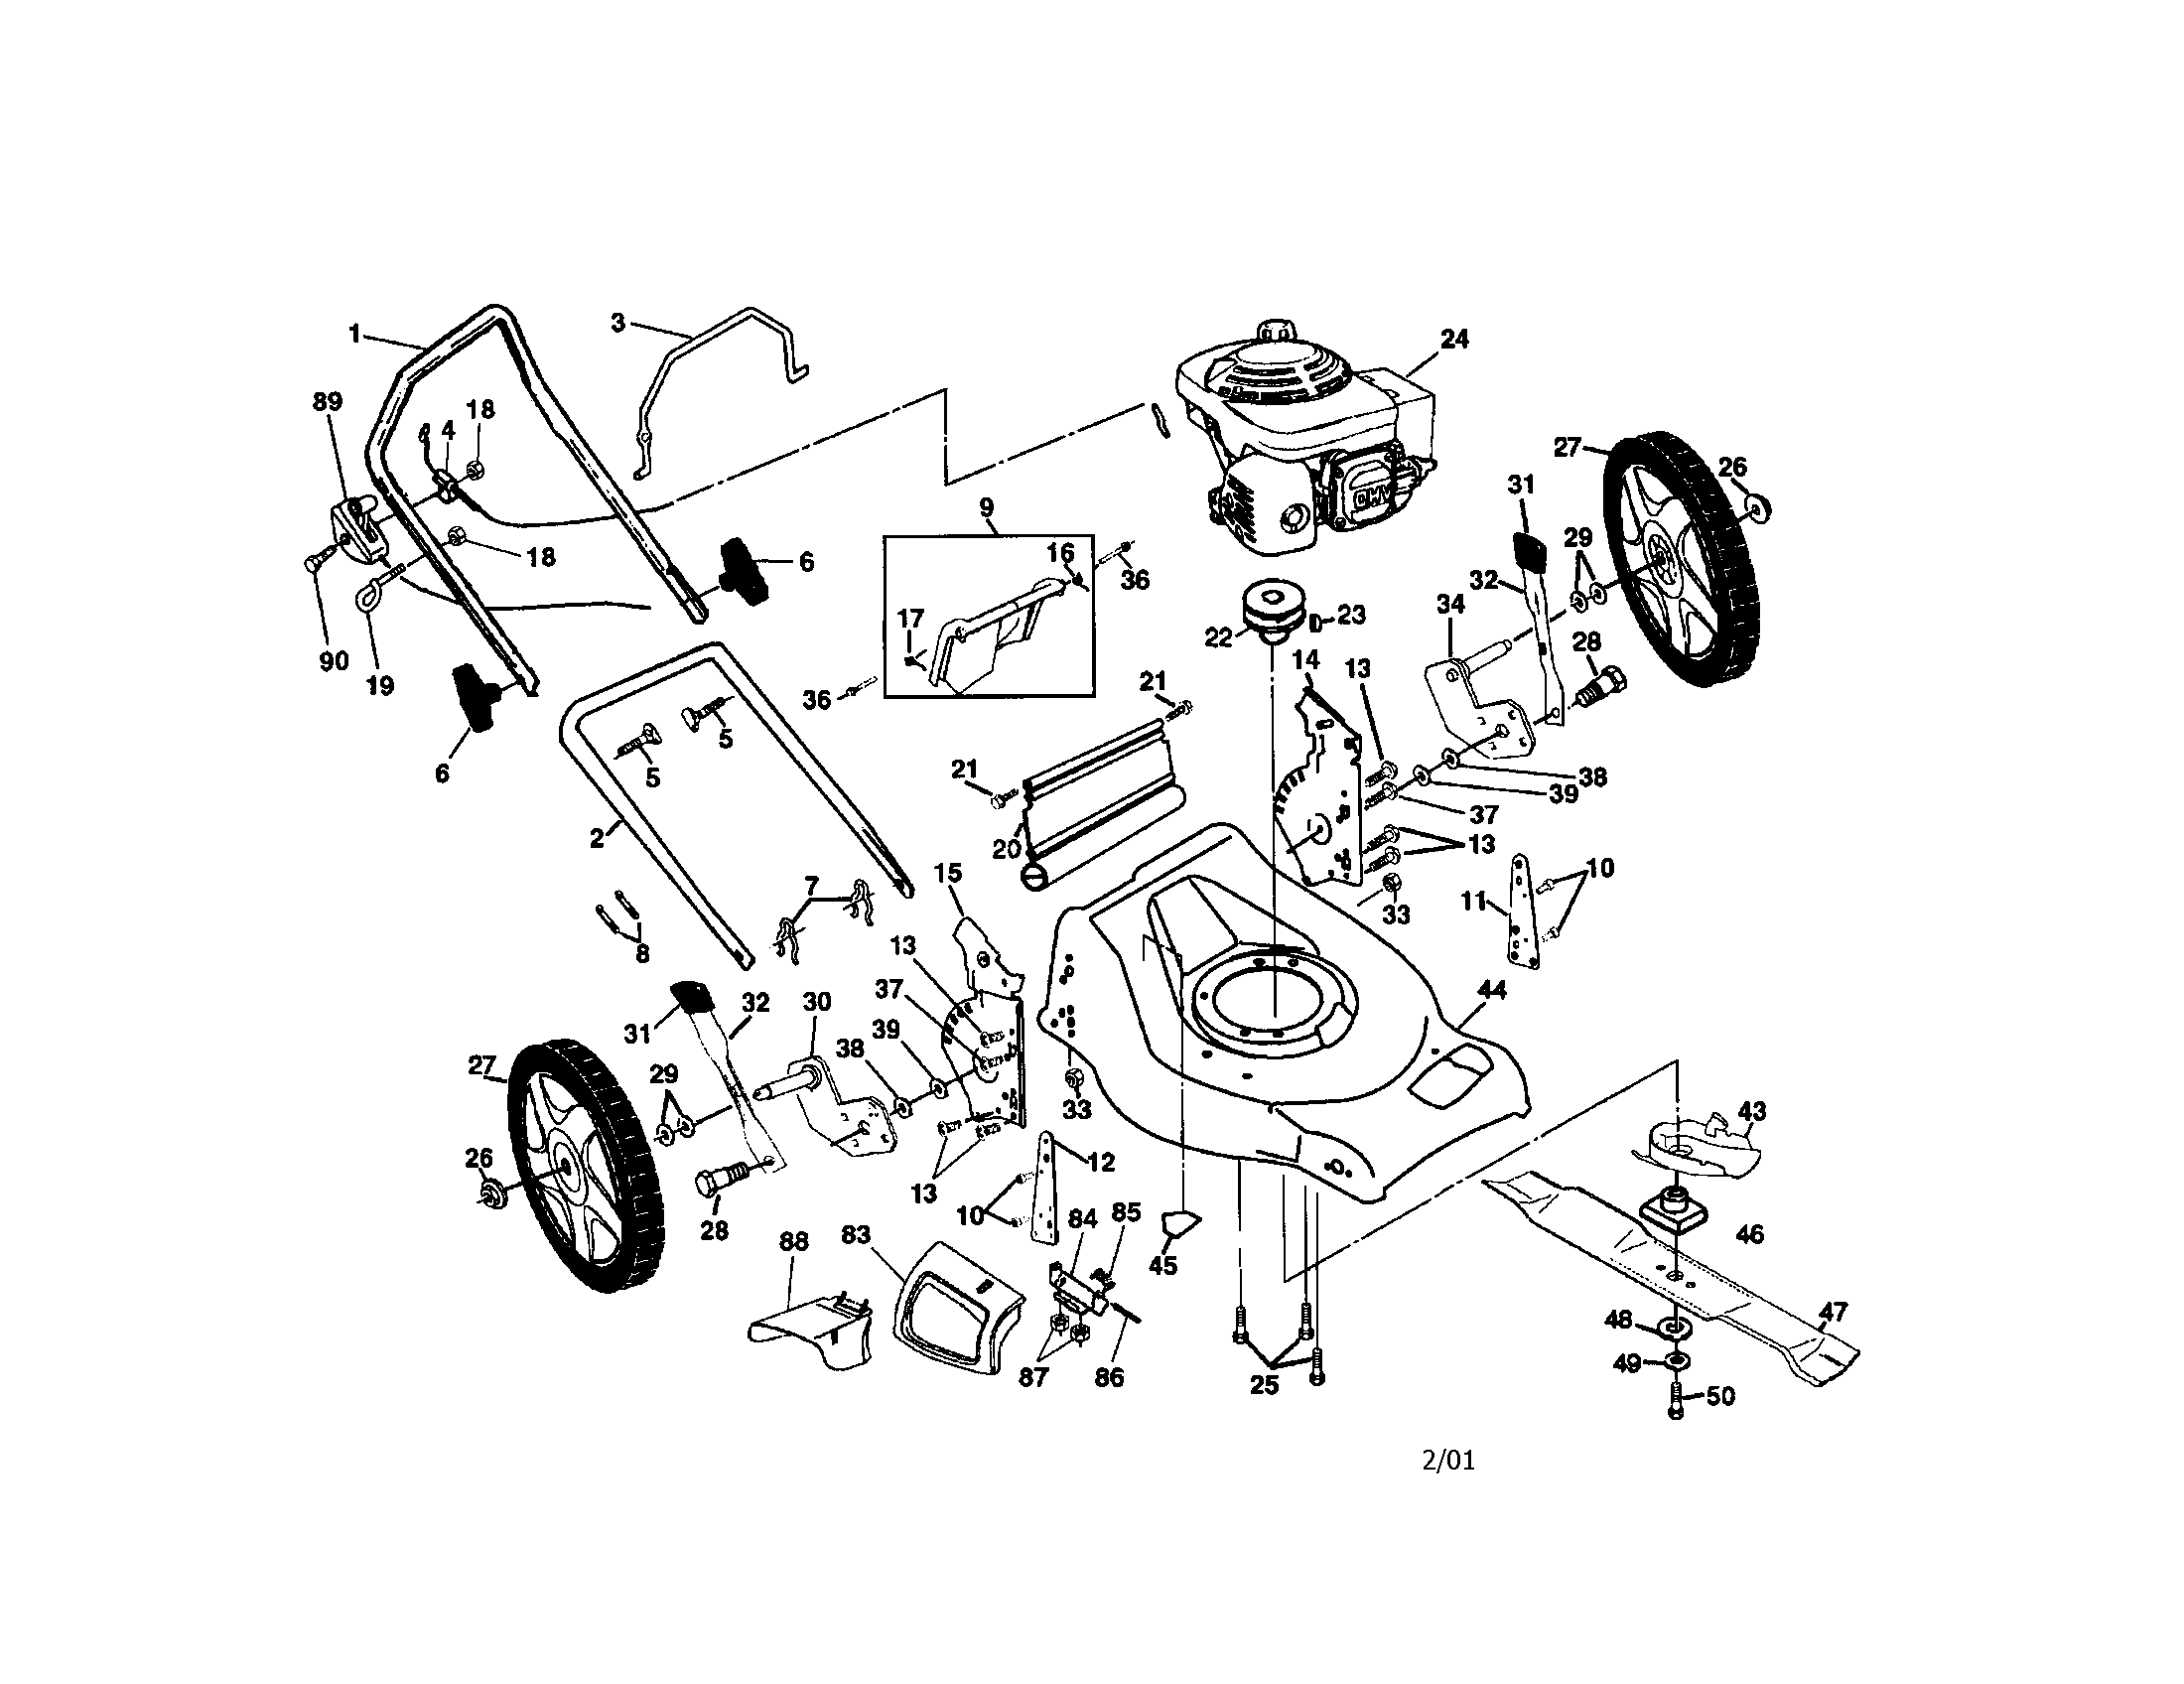 Wiring diagram honda diagrams poulan rotary mower parts model pr55hy21ca sears partsdirect